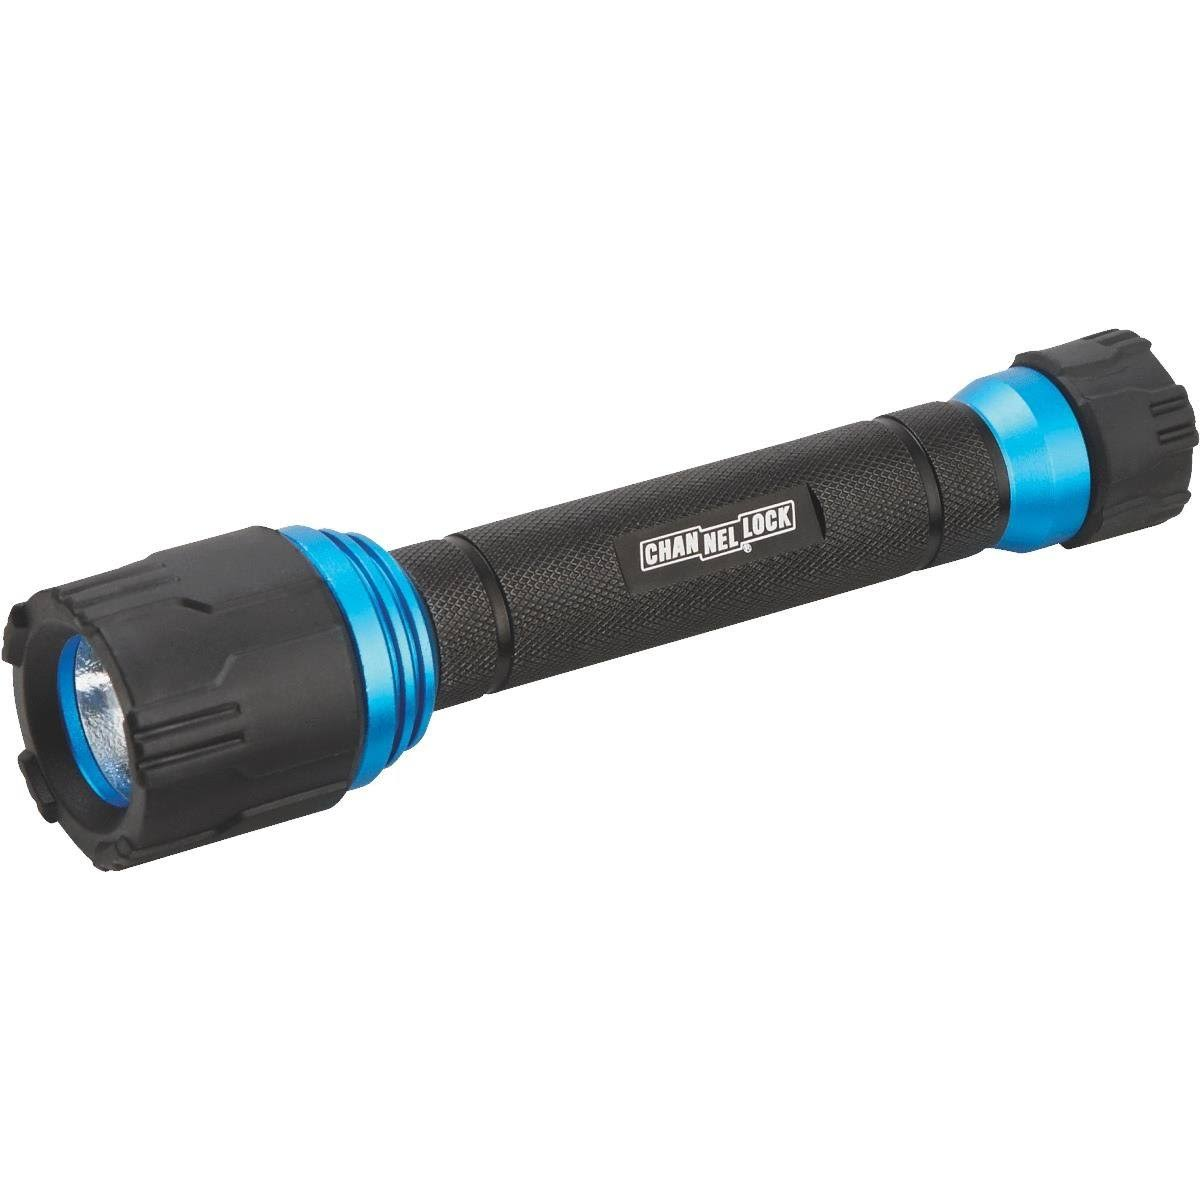 Channellock Products 801890 Aluminum Flashlight - Black, 90Lumens, Uses 2 AA Batteries